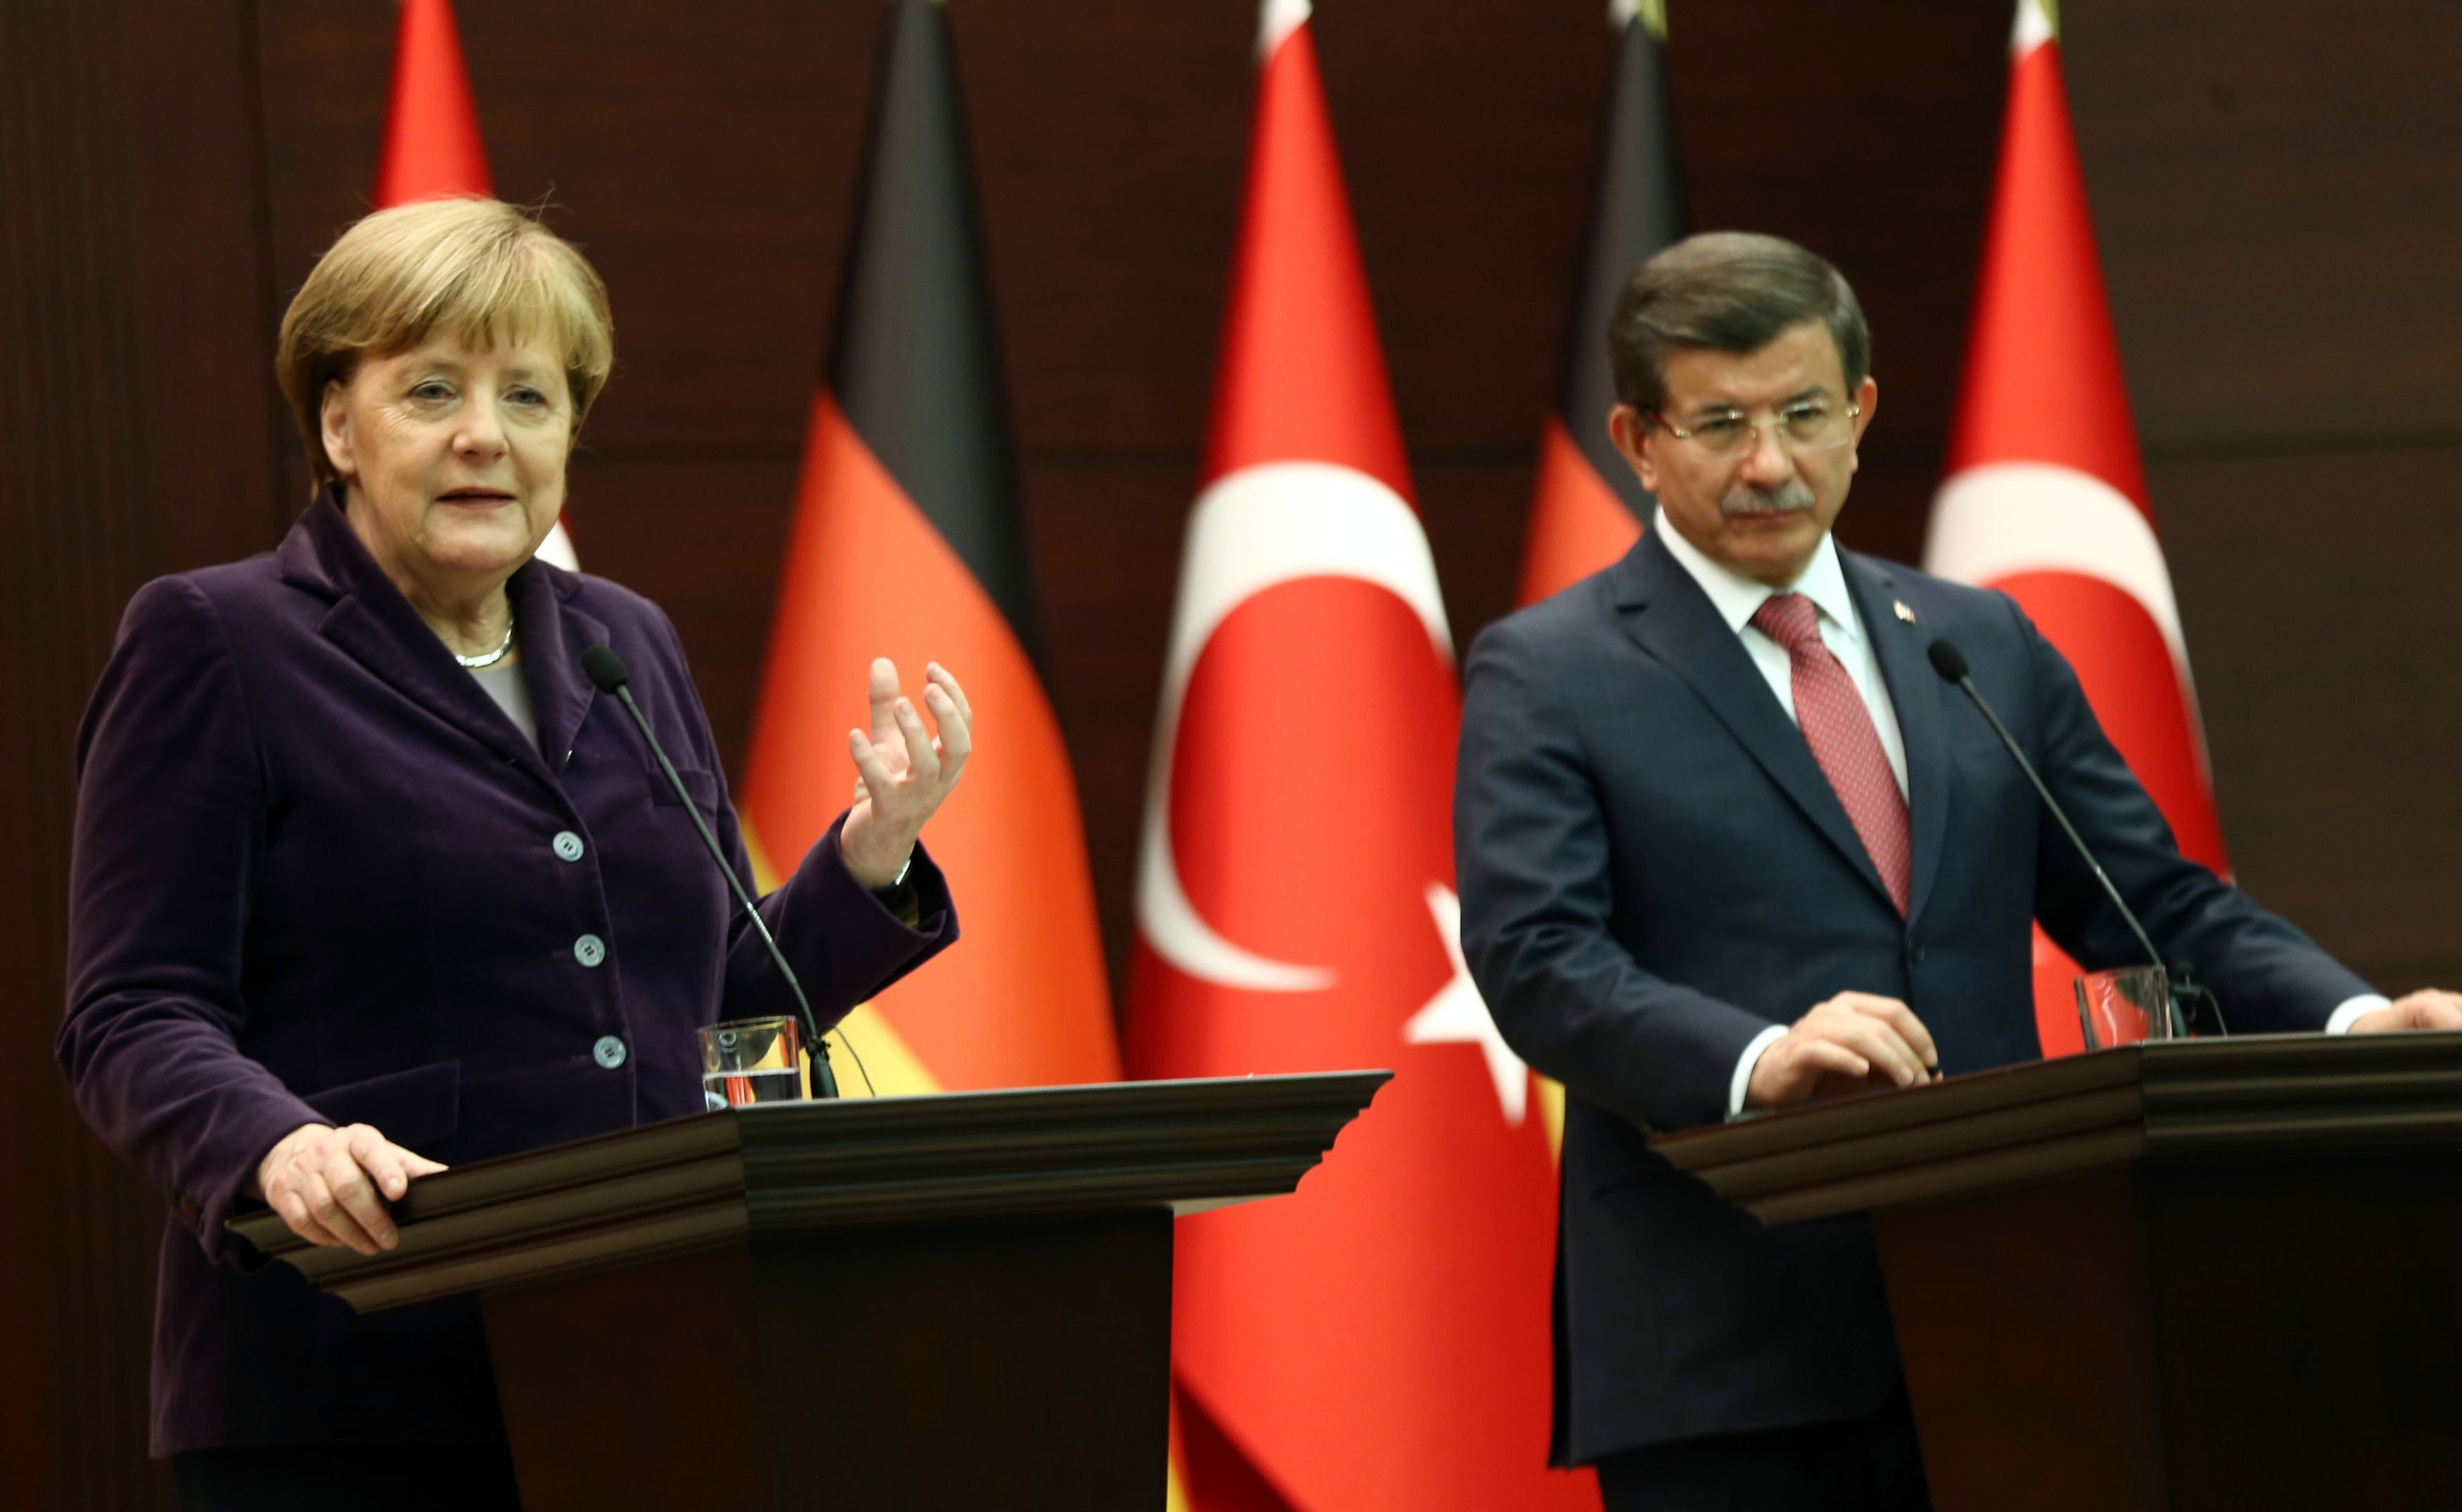 Merkel Approves Request to Prosecute German Comedian After Satirical Poem About Turkish President